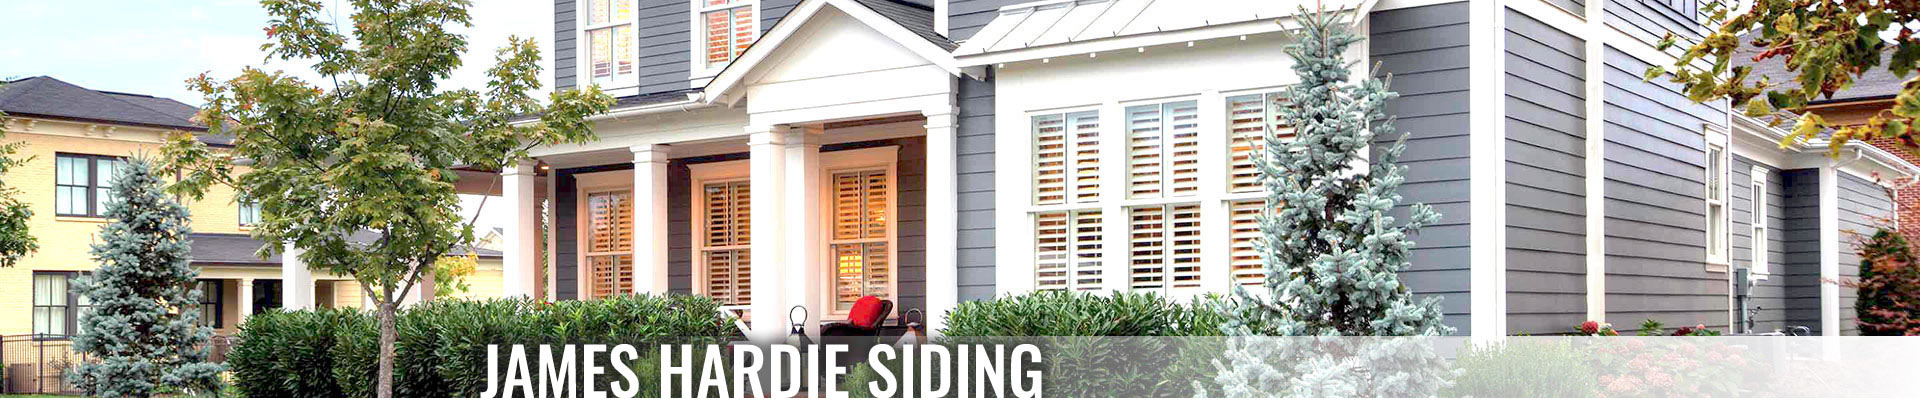 James Hardie Fiber Cement Siding - Designer Shingles, Types of Siding Products at Turkstra Lumber. Visit our Designer Showcase today!